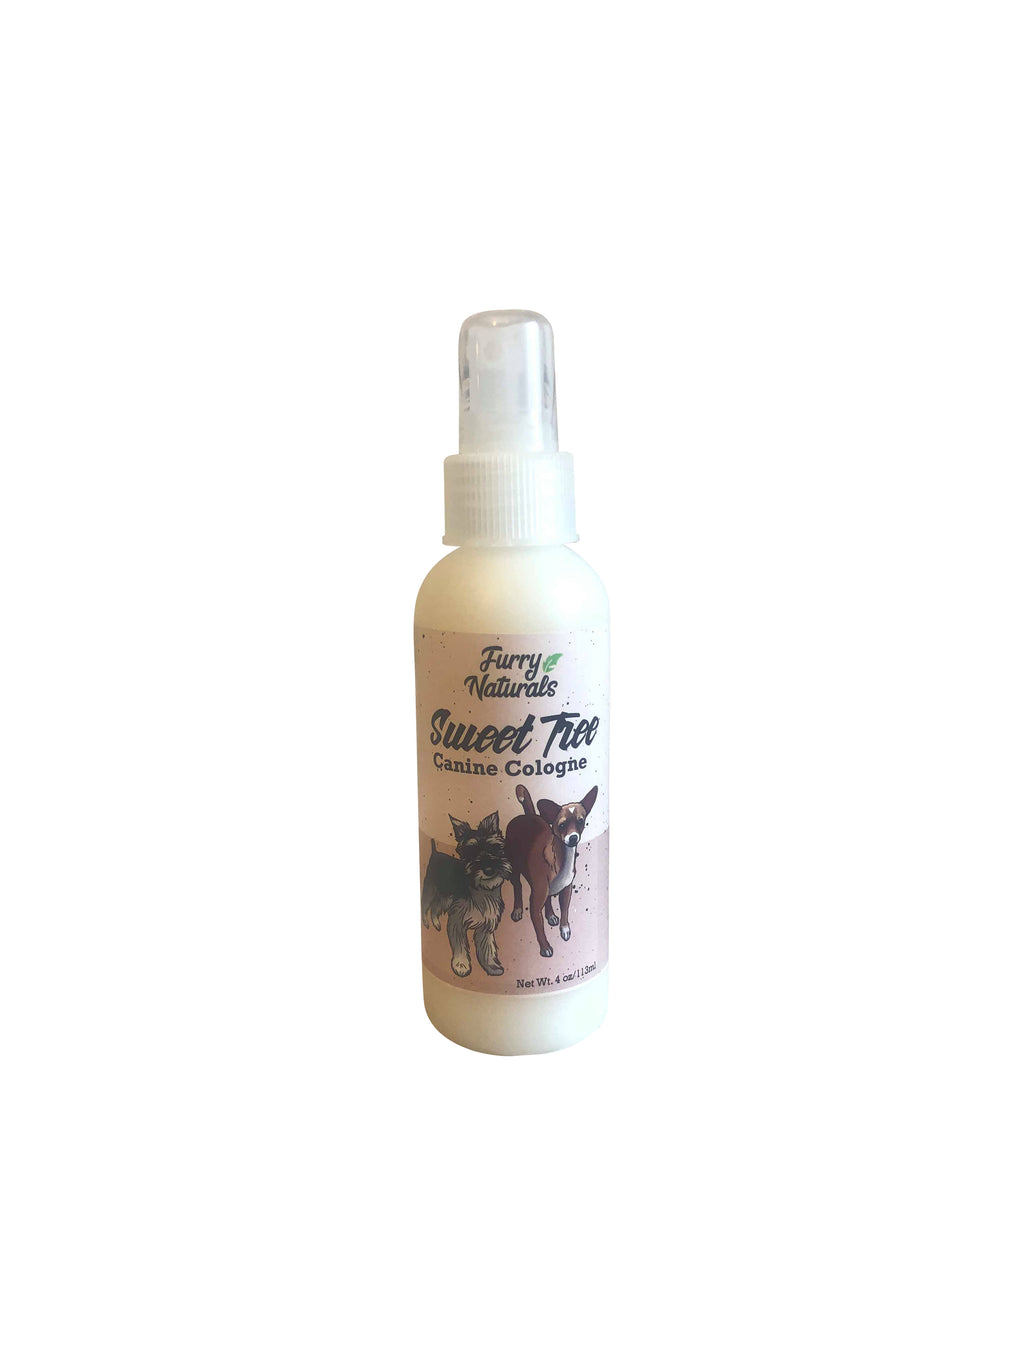 Sweet Tree Canine Cologne 4oz